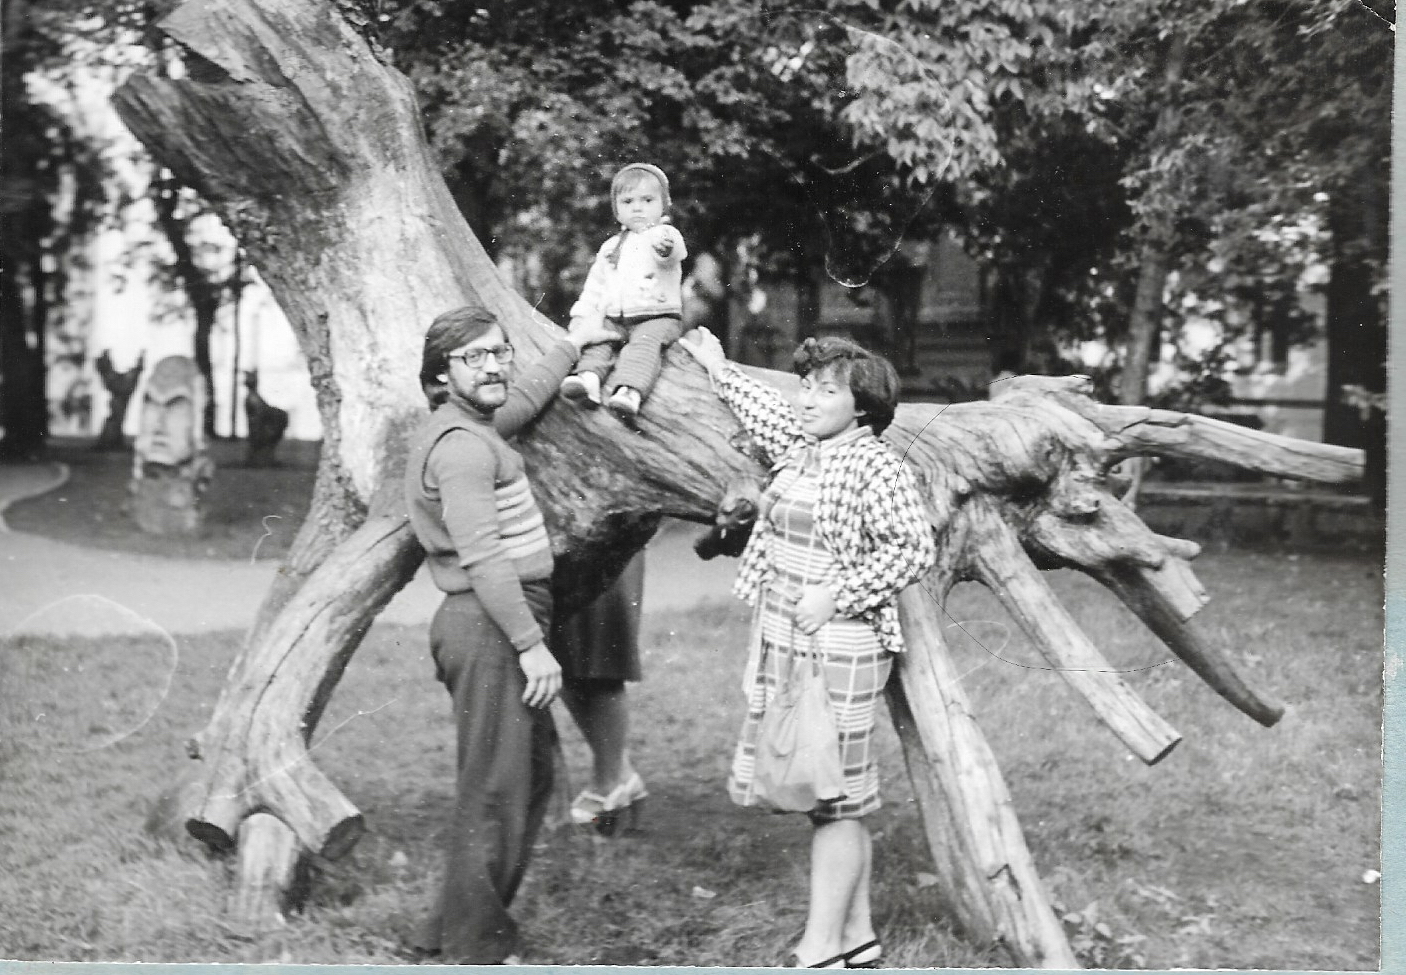 Sophia Moskalenko with hermother and father in 1977, when she is 1 years old. She was raised inKyiv, Ukraine, some 60 miles from the site of the Chernobyl disaster.